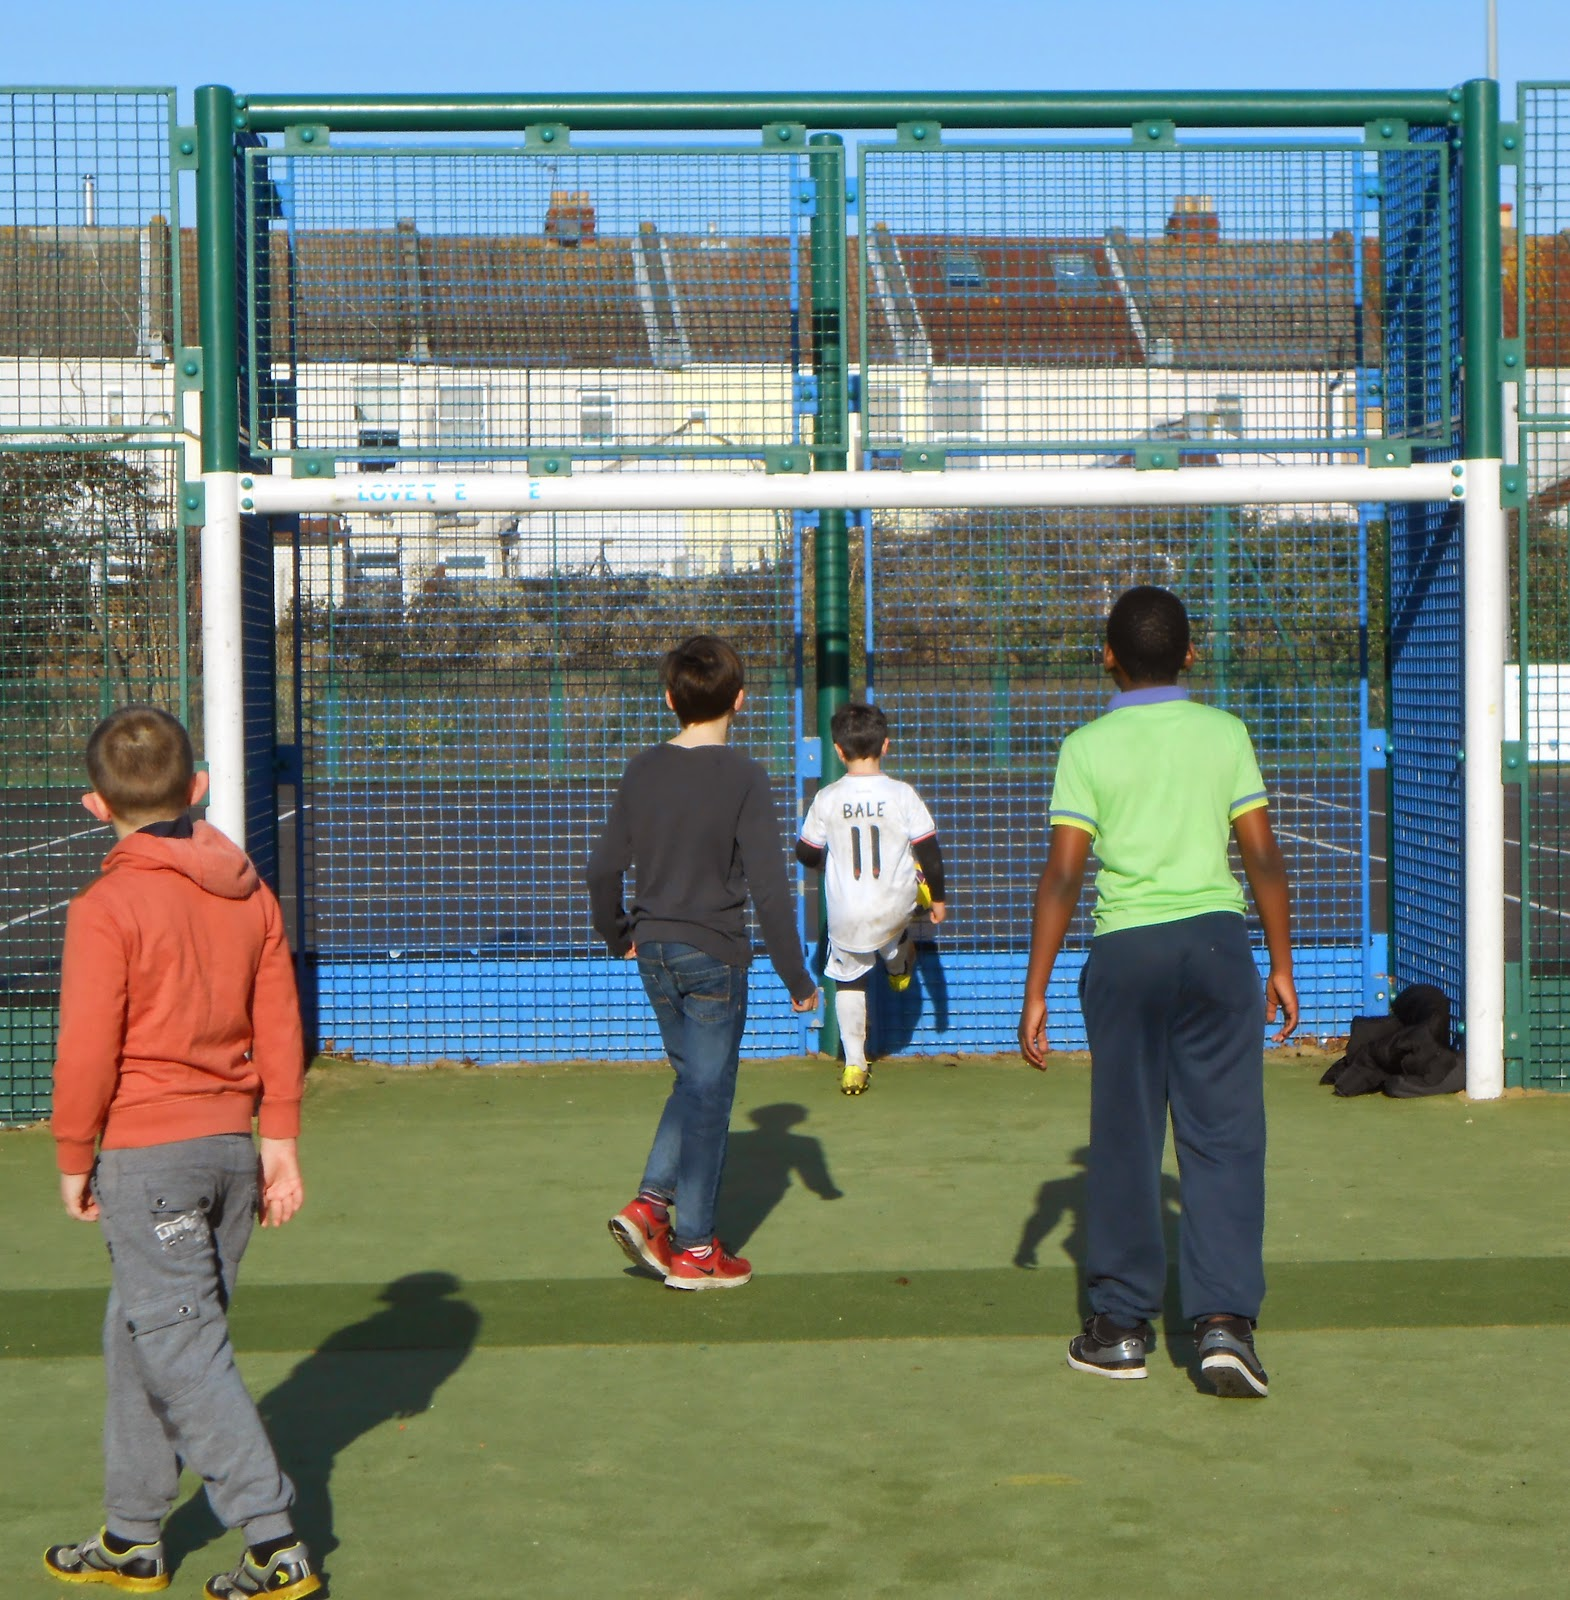 bransbury park spaces for sports portsmouth